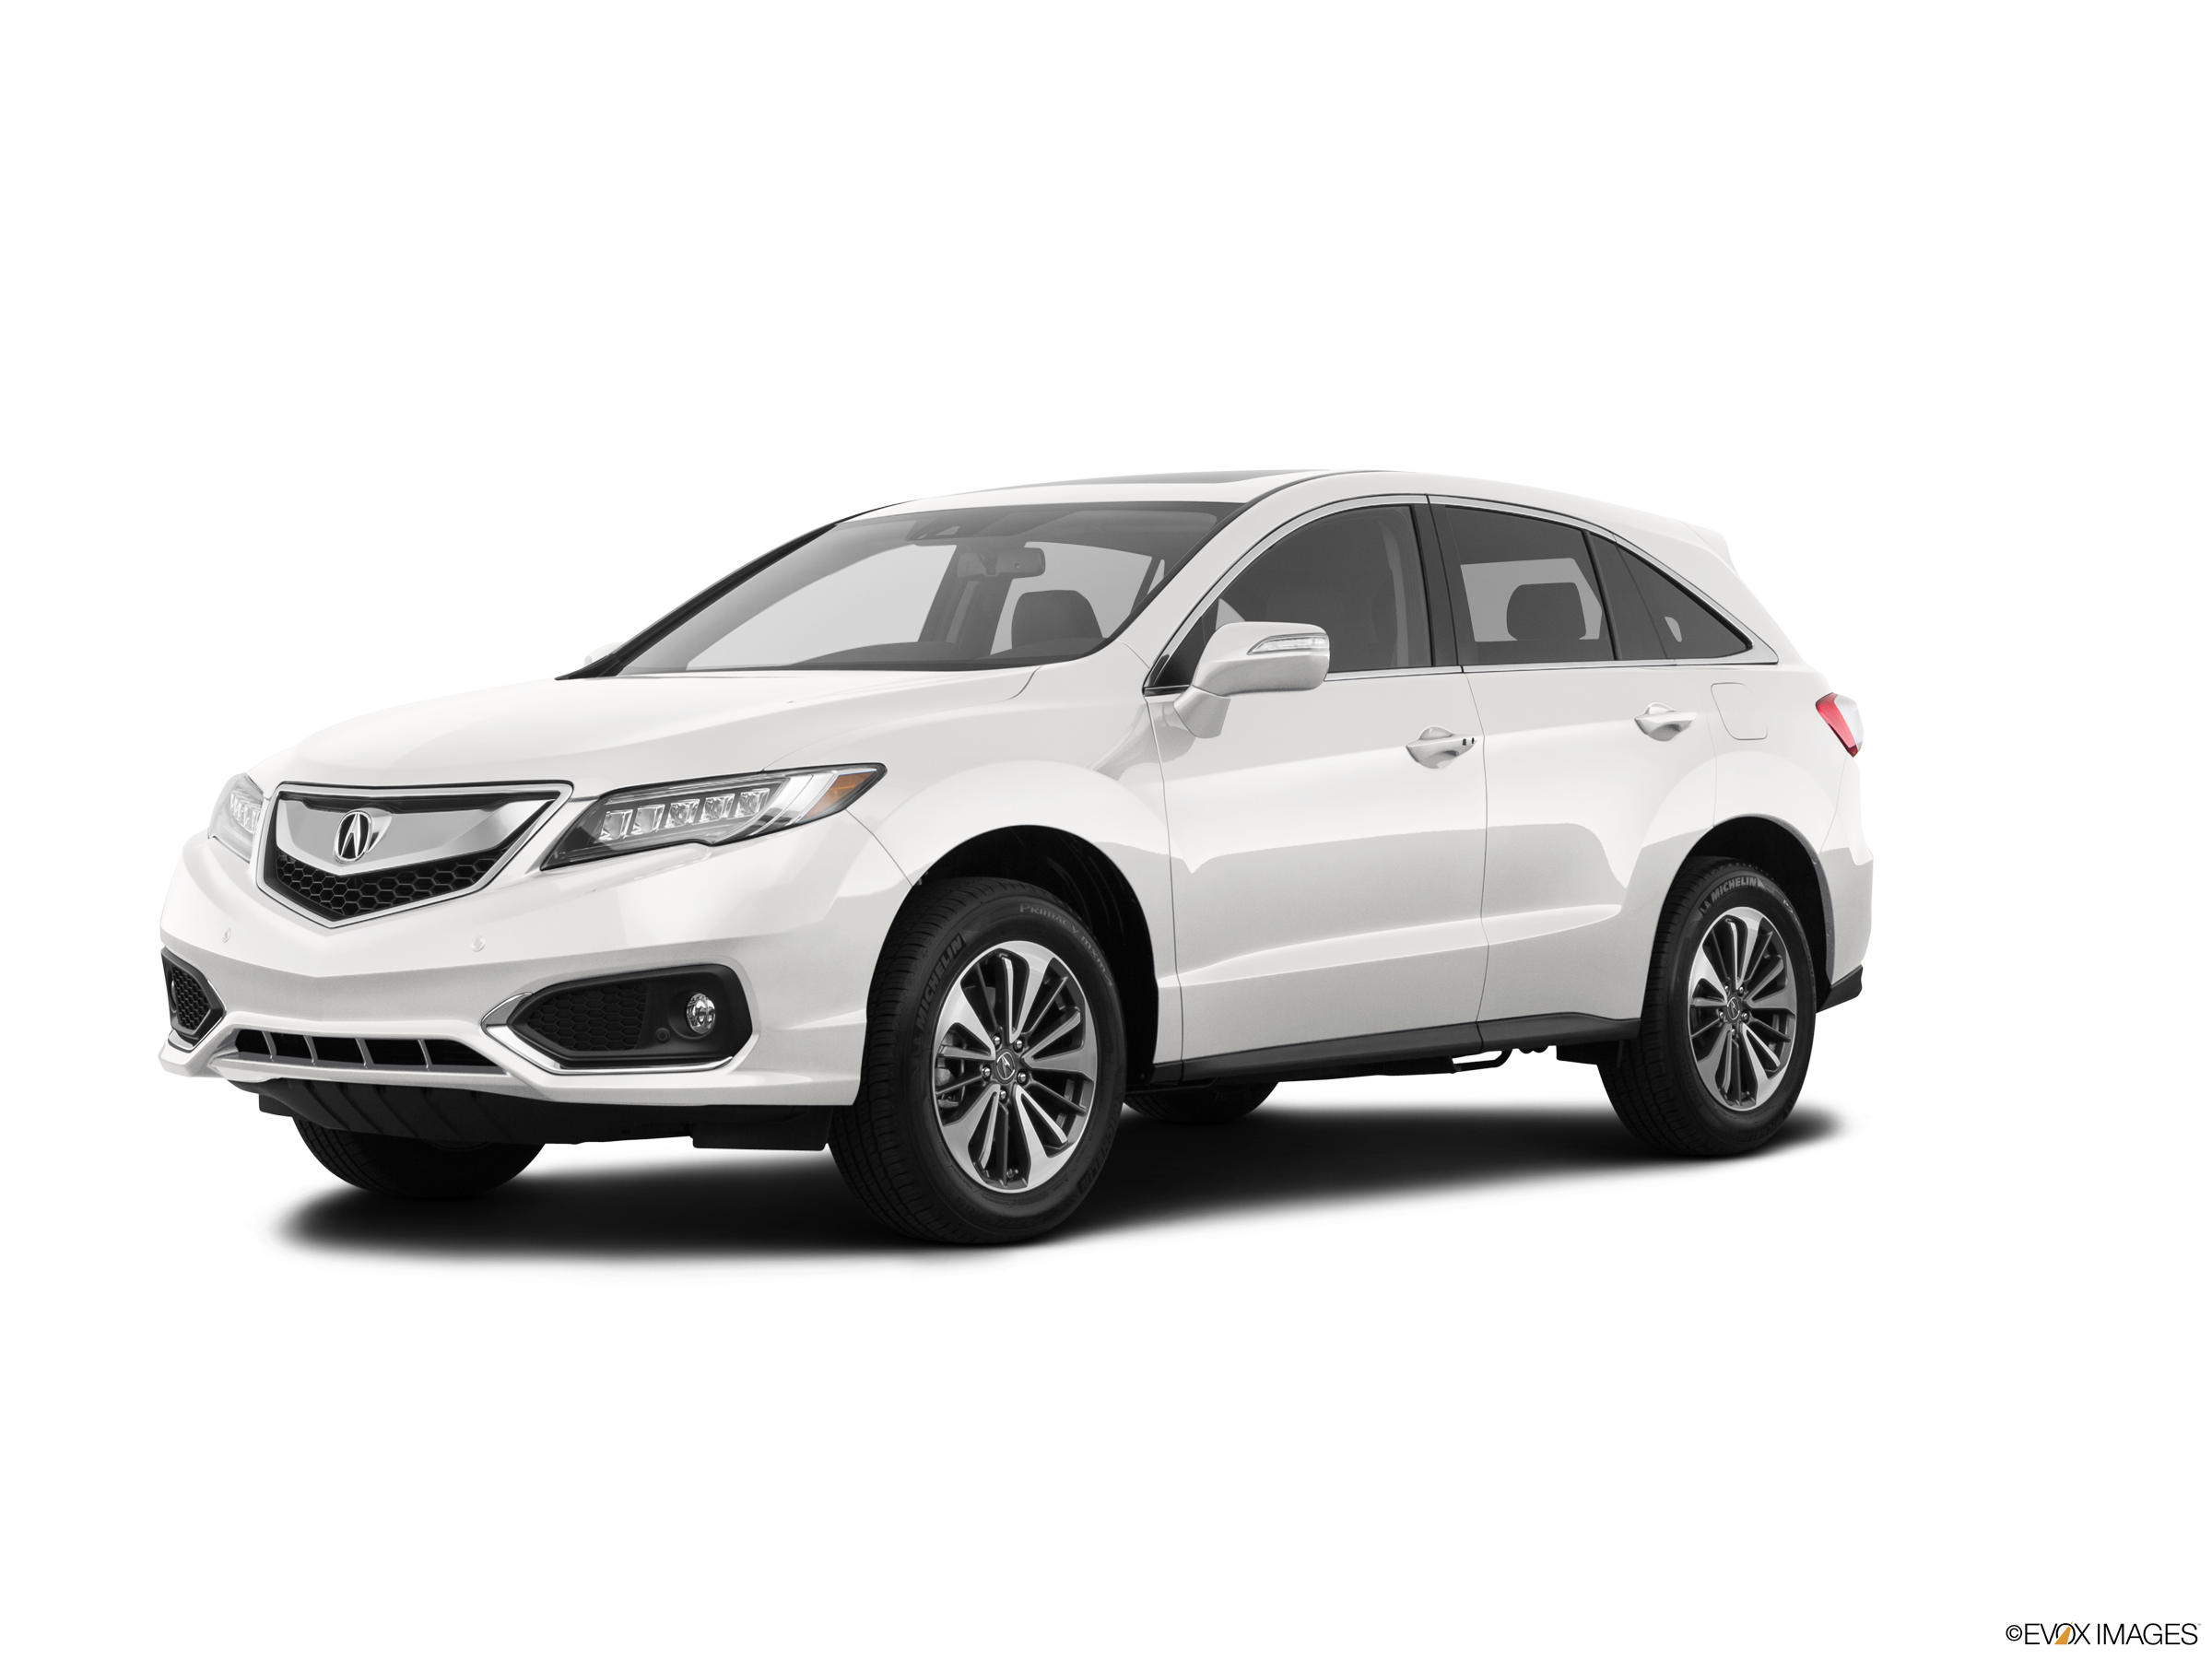 10 Best Luxury Cars Under $35,000 - 2018 Acura RDX